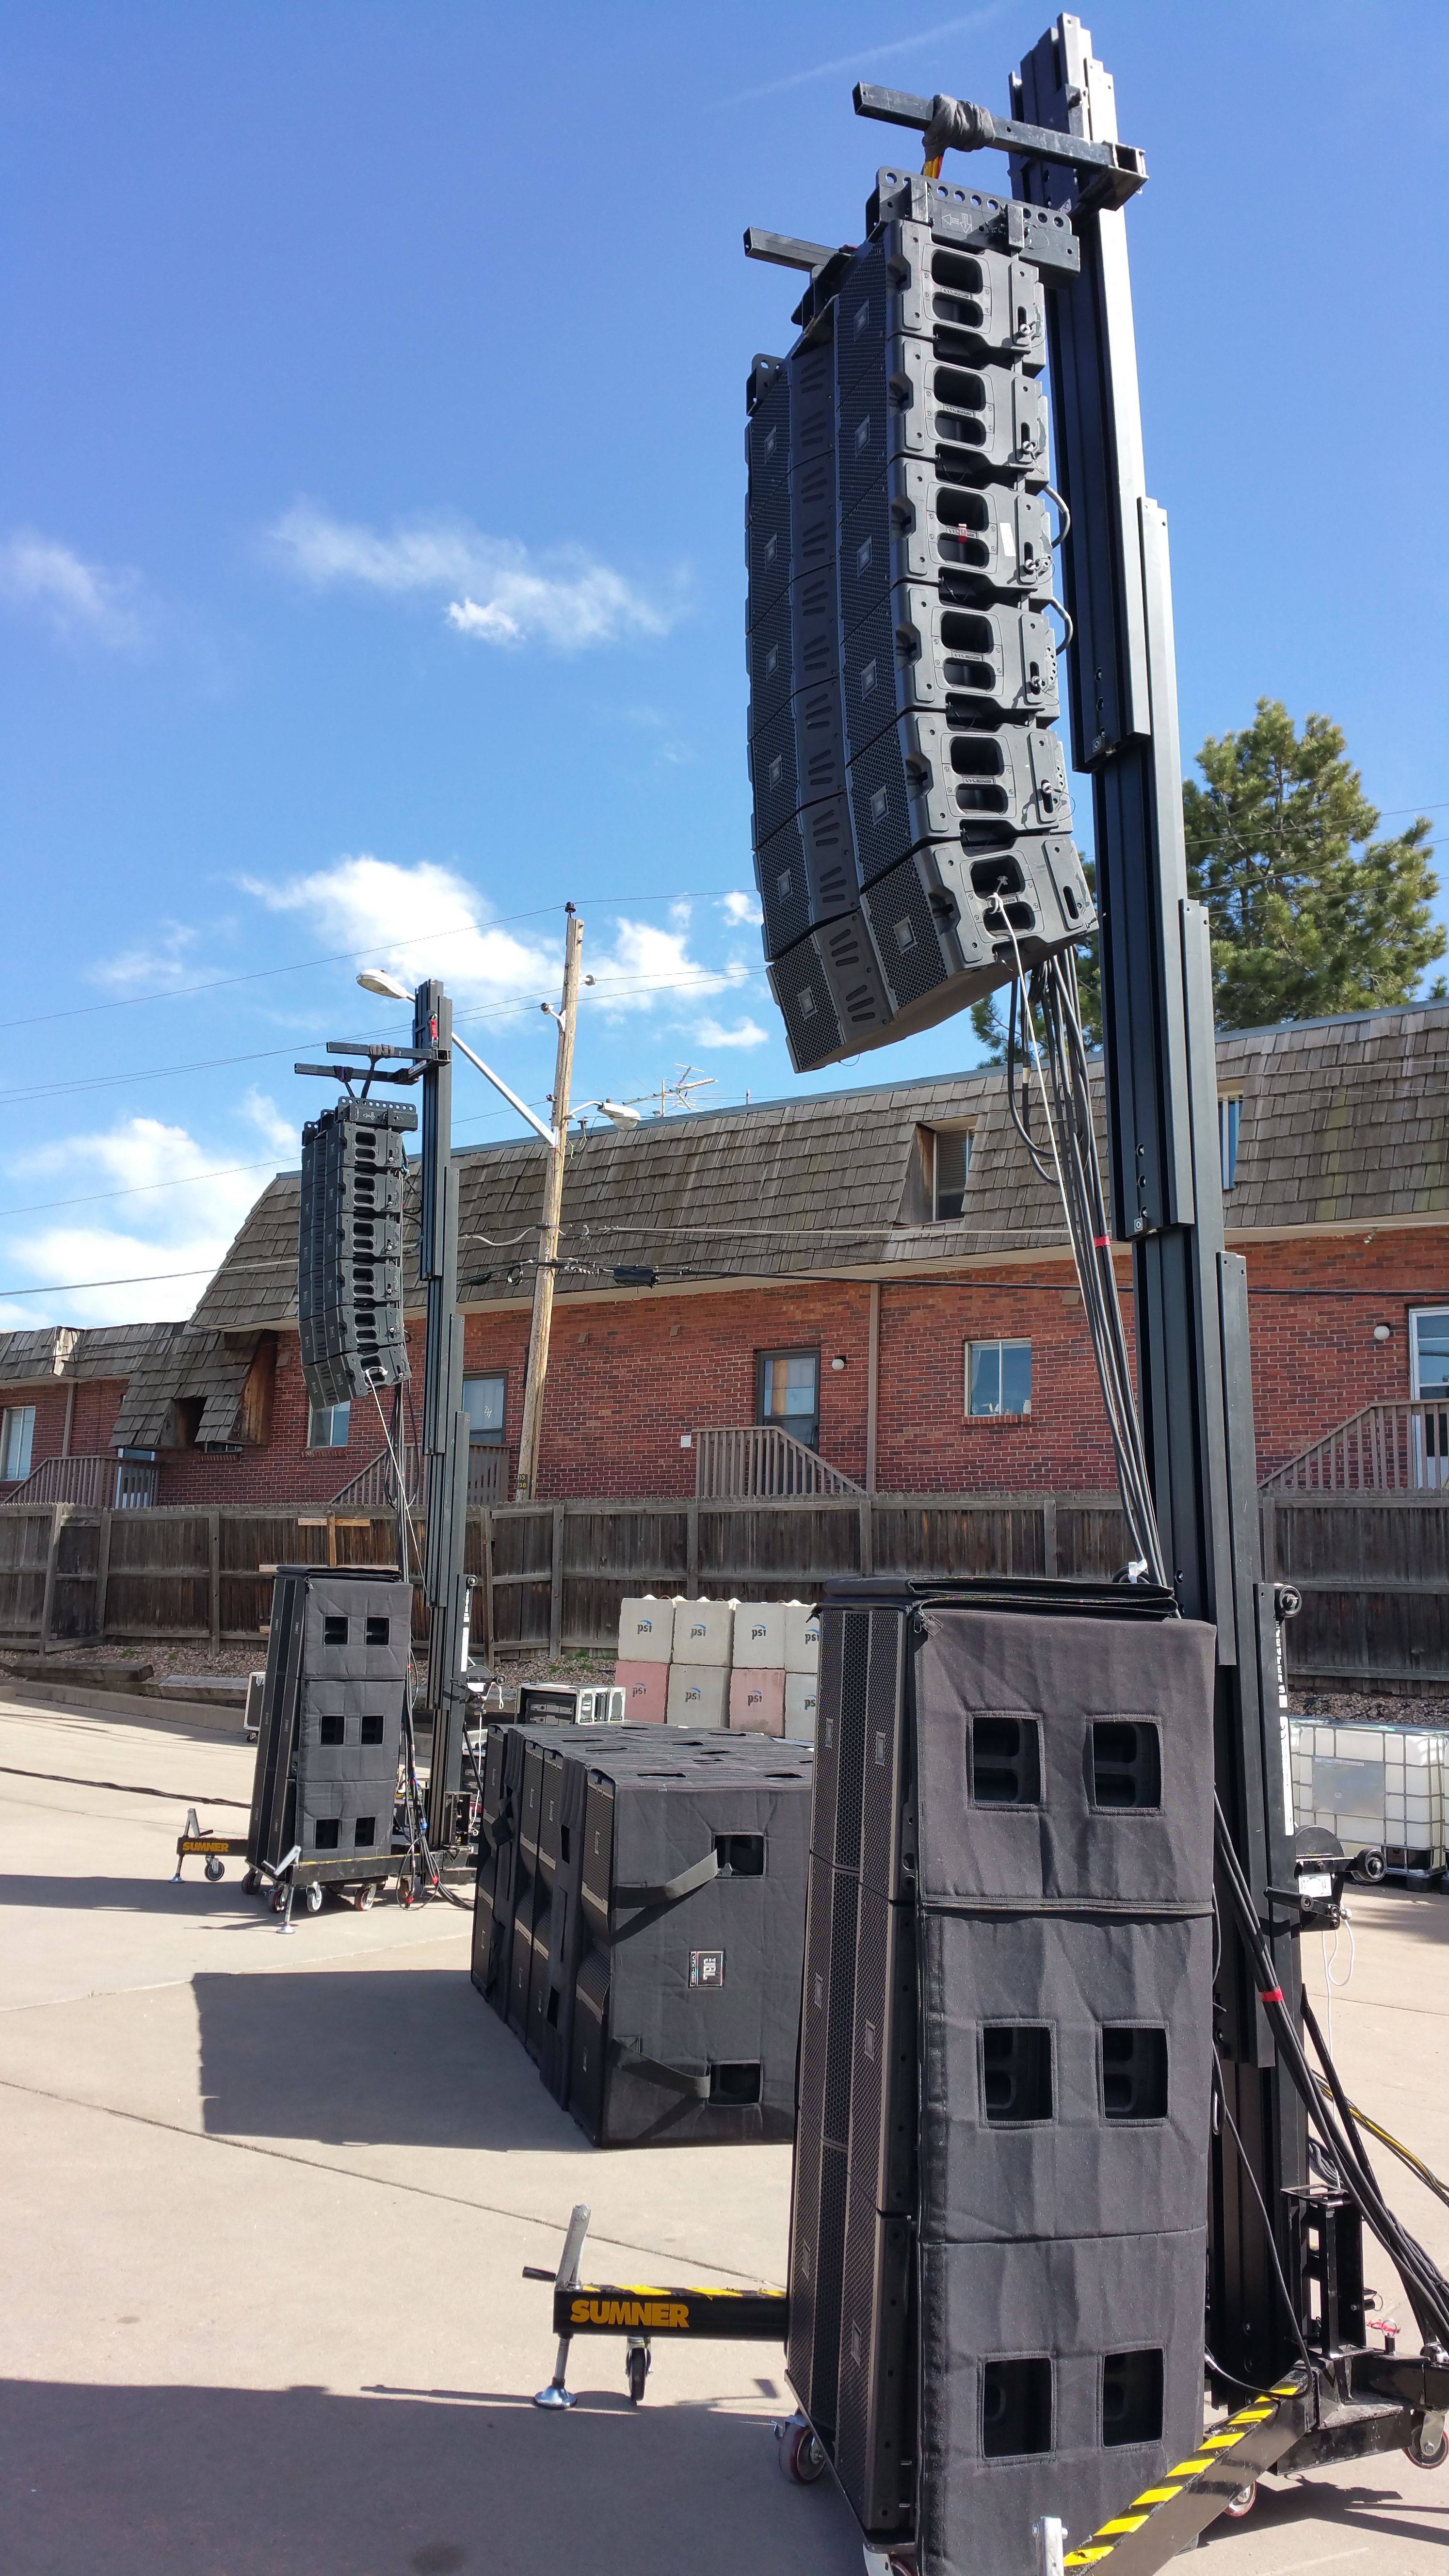 Listened to a good sounding demo rig by JBL Professional : #JBL VTX V20 Tops #JBL S28 Subs #JBL G28 Subs #Crown V-Racks